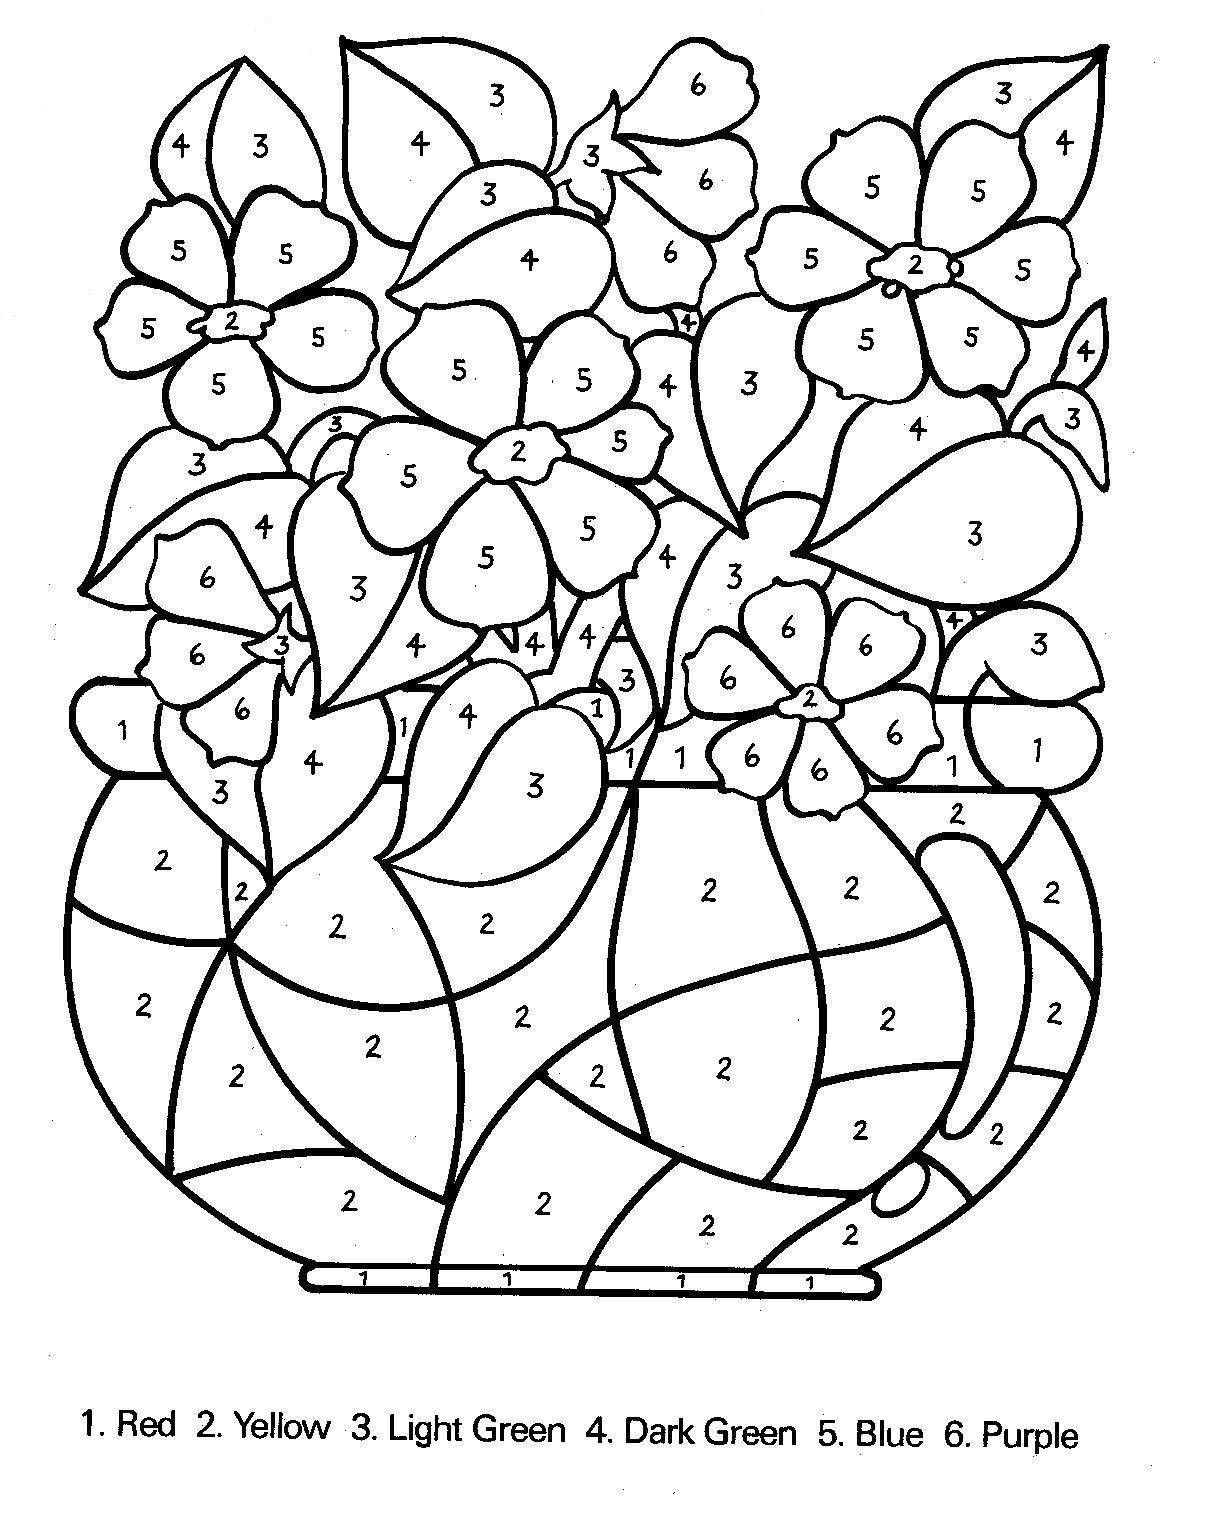 Spring coloring pages for adults free - Color By Number Flowers Adults Coloring Pages Printable And Coloring Book To Print For Free Find More Coloring Pages Online For Kids And Adults Of Color By